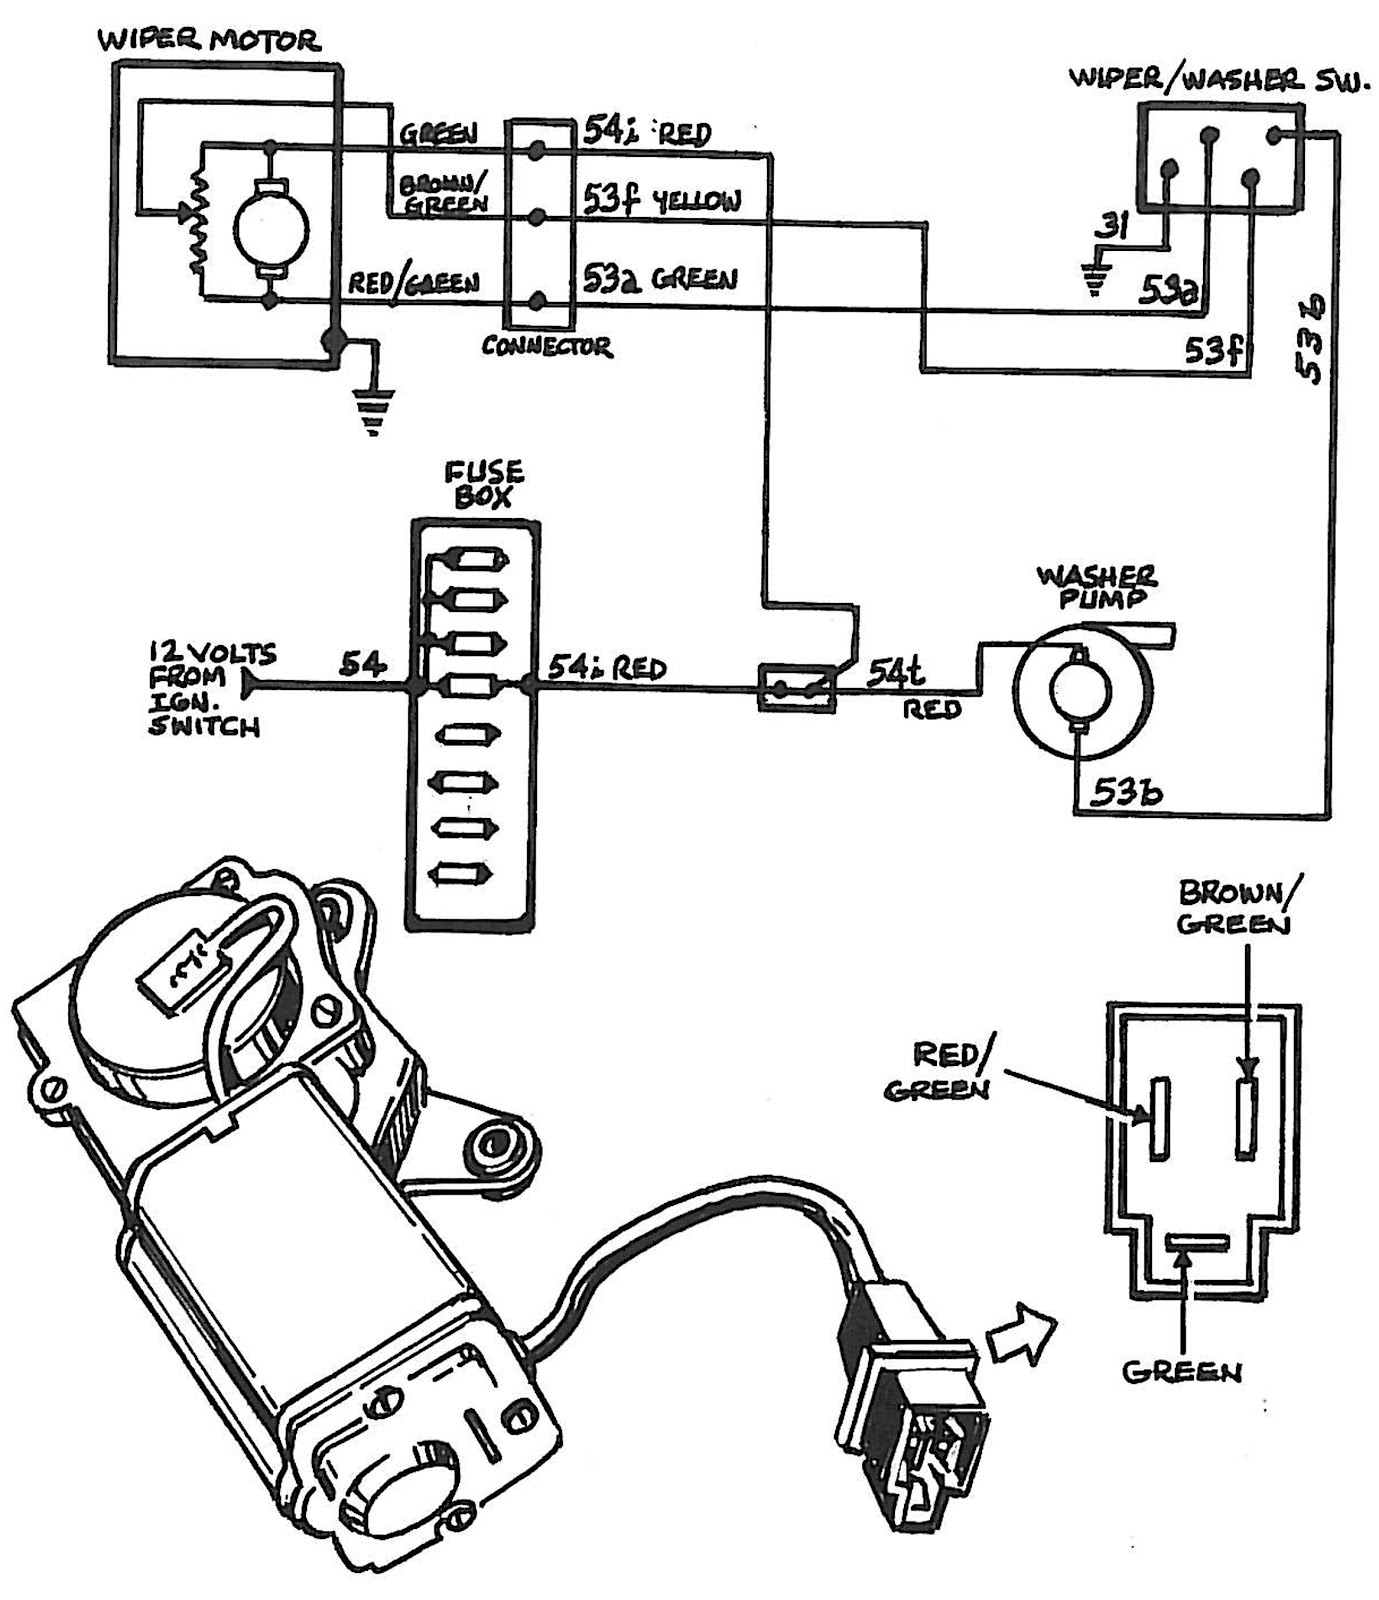 Chevy Engine Wiring Diagram in addition Jaguar Xj6 Series 2 Wiring Diagram together with Jaguar X0 Wiring Diagram also 1984 Jaguar Xjs Wiring Diagram further Early Windshield Wiper Motor Rebuild. on 1986 jaguar xj6 wiring diagram